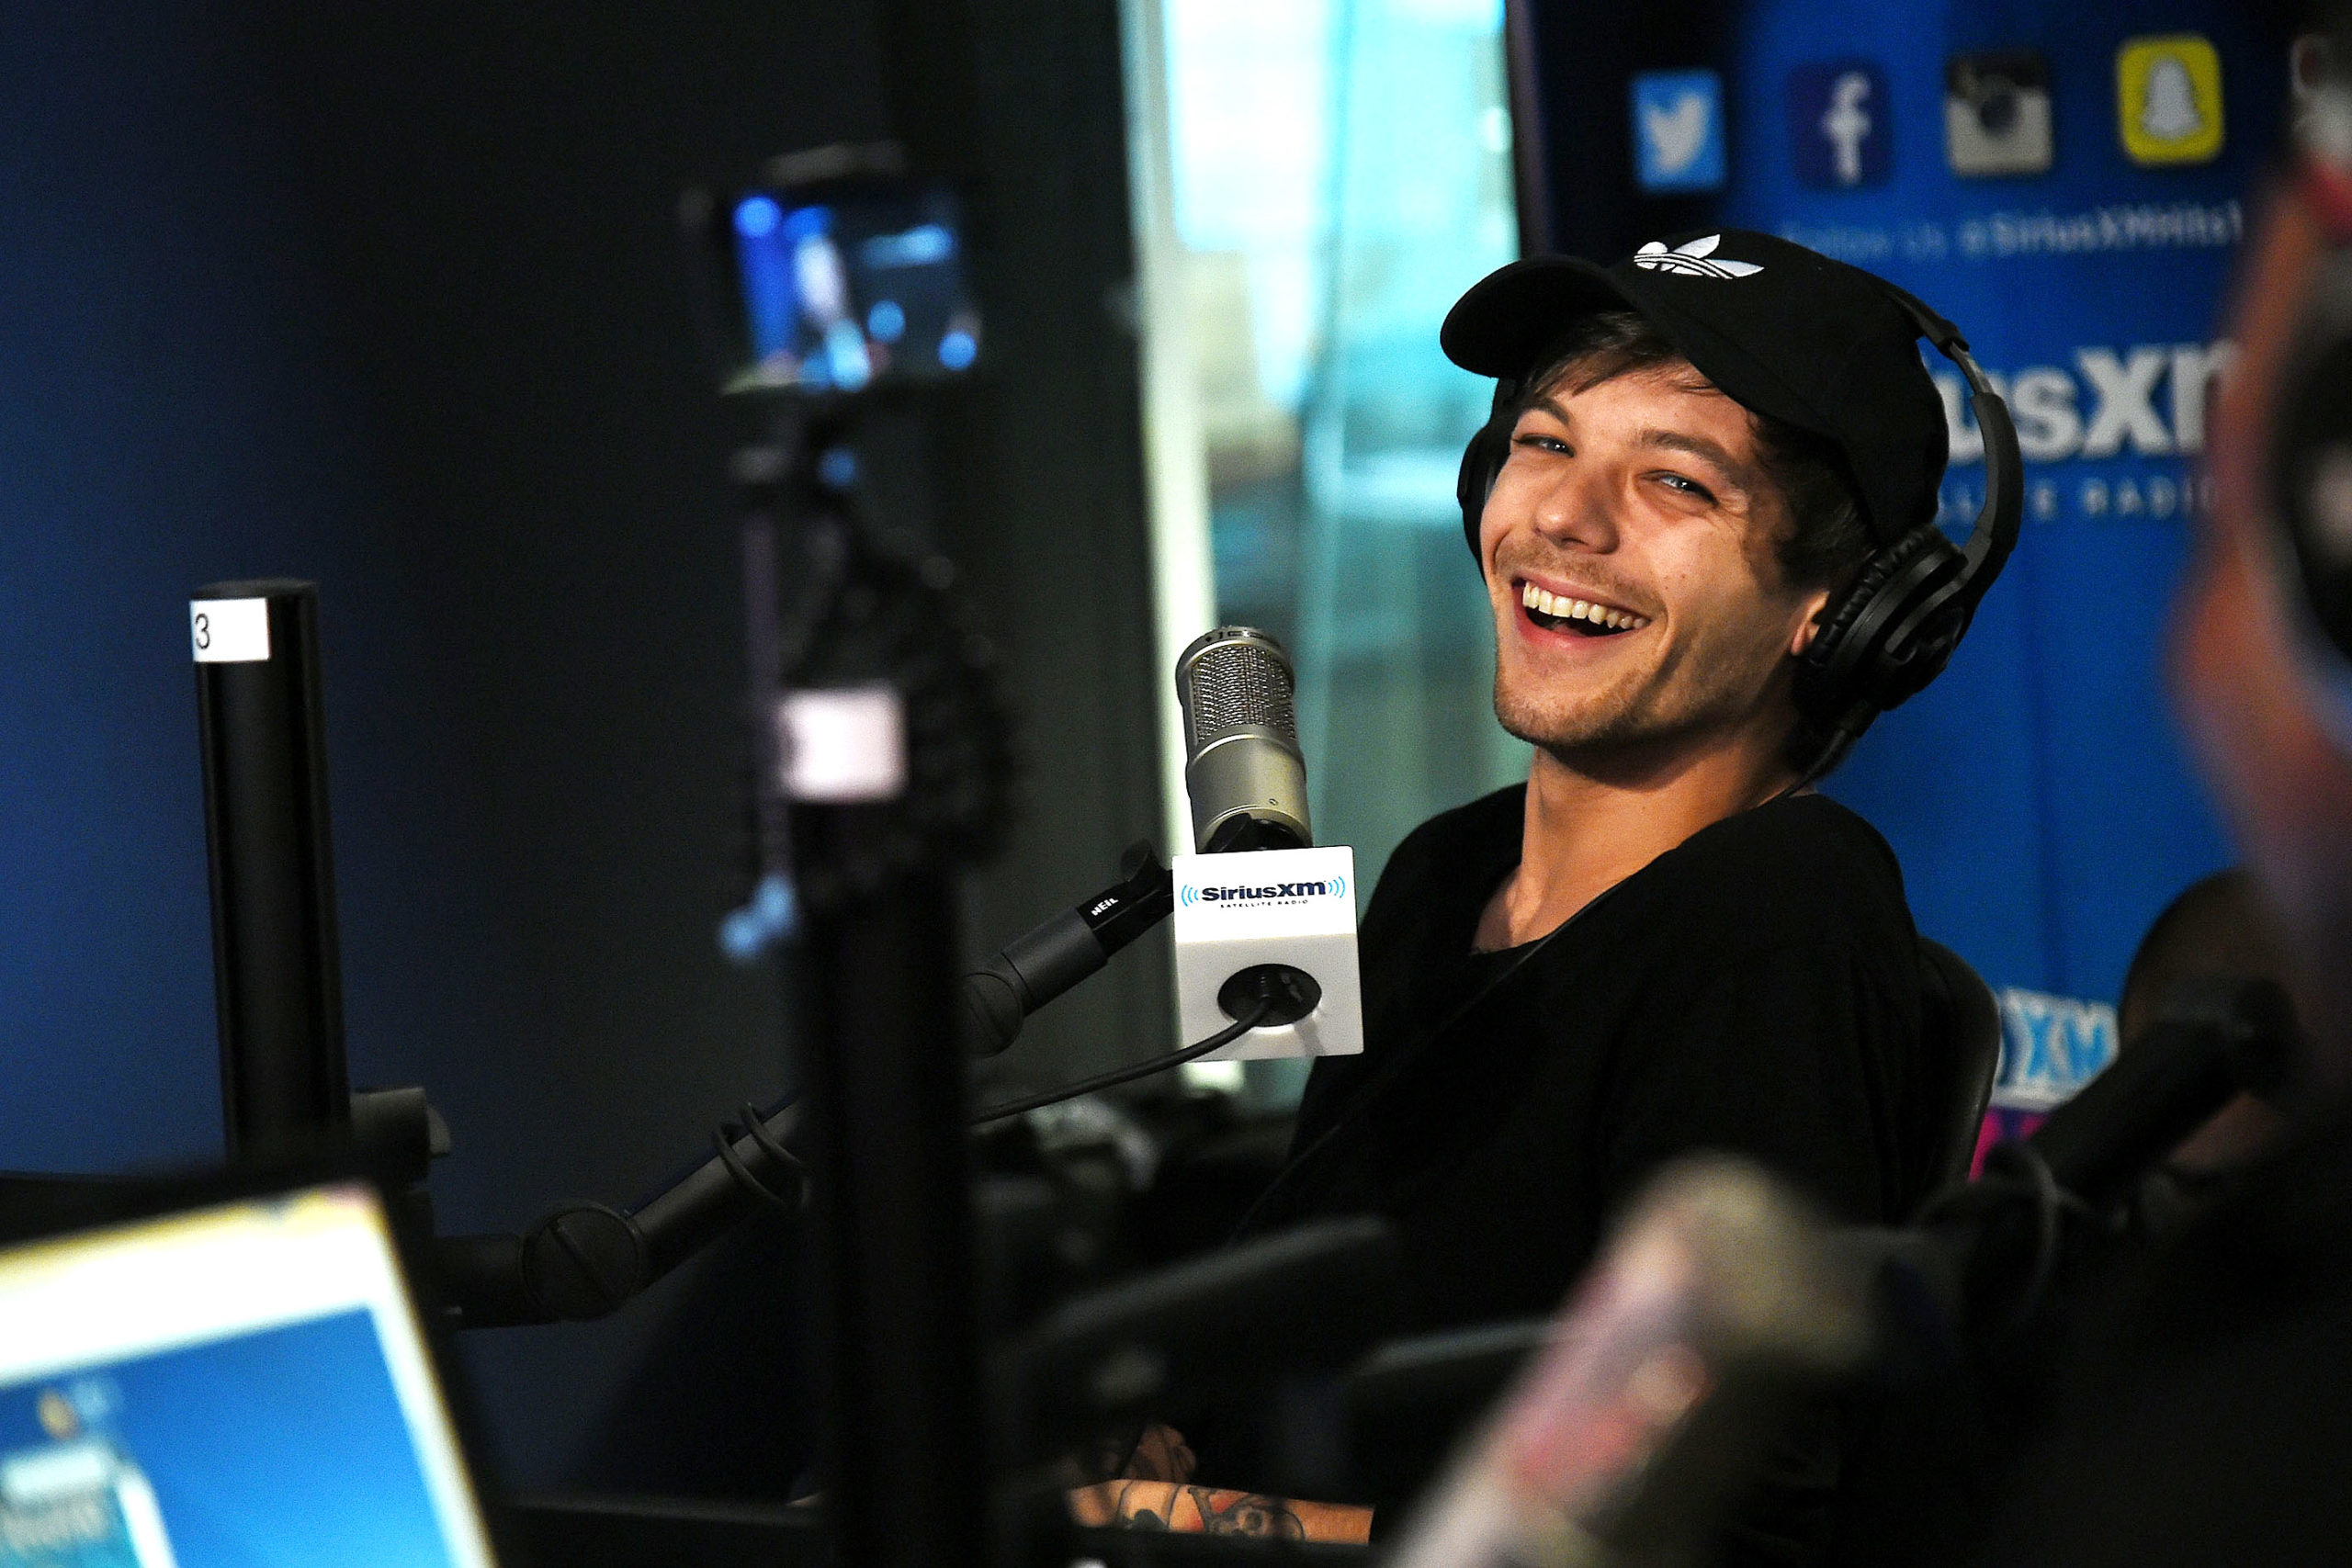 NEW MUSIC from Louis Tomlinson ft. Bebe Rexha [LISTEN]